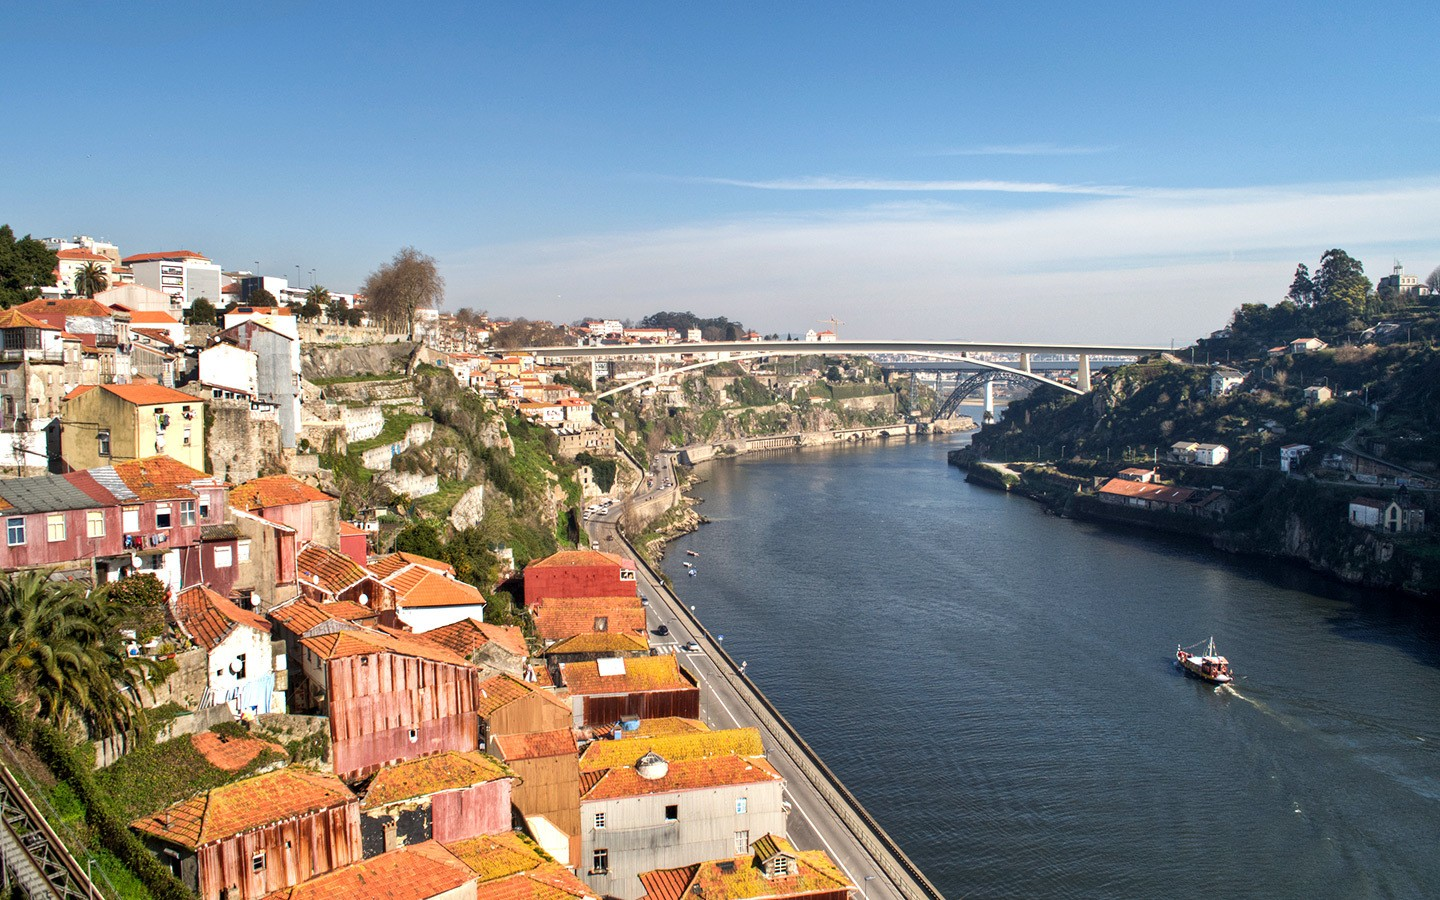 Views from the The Dom Luís bridge in Porto, Portugal